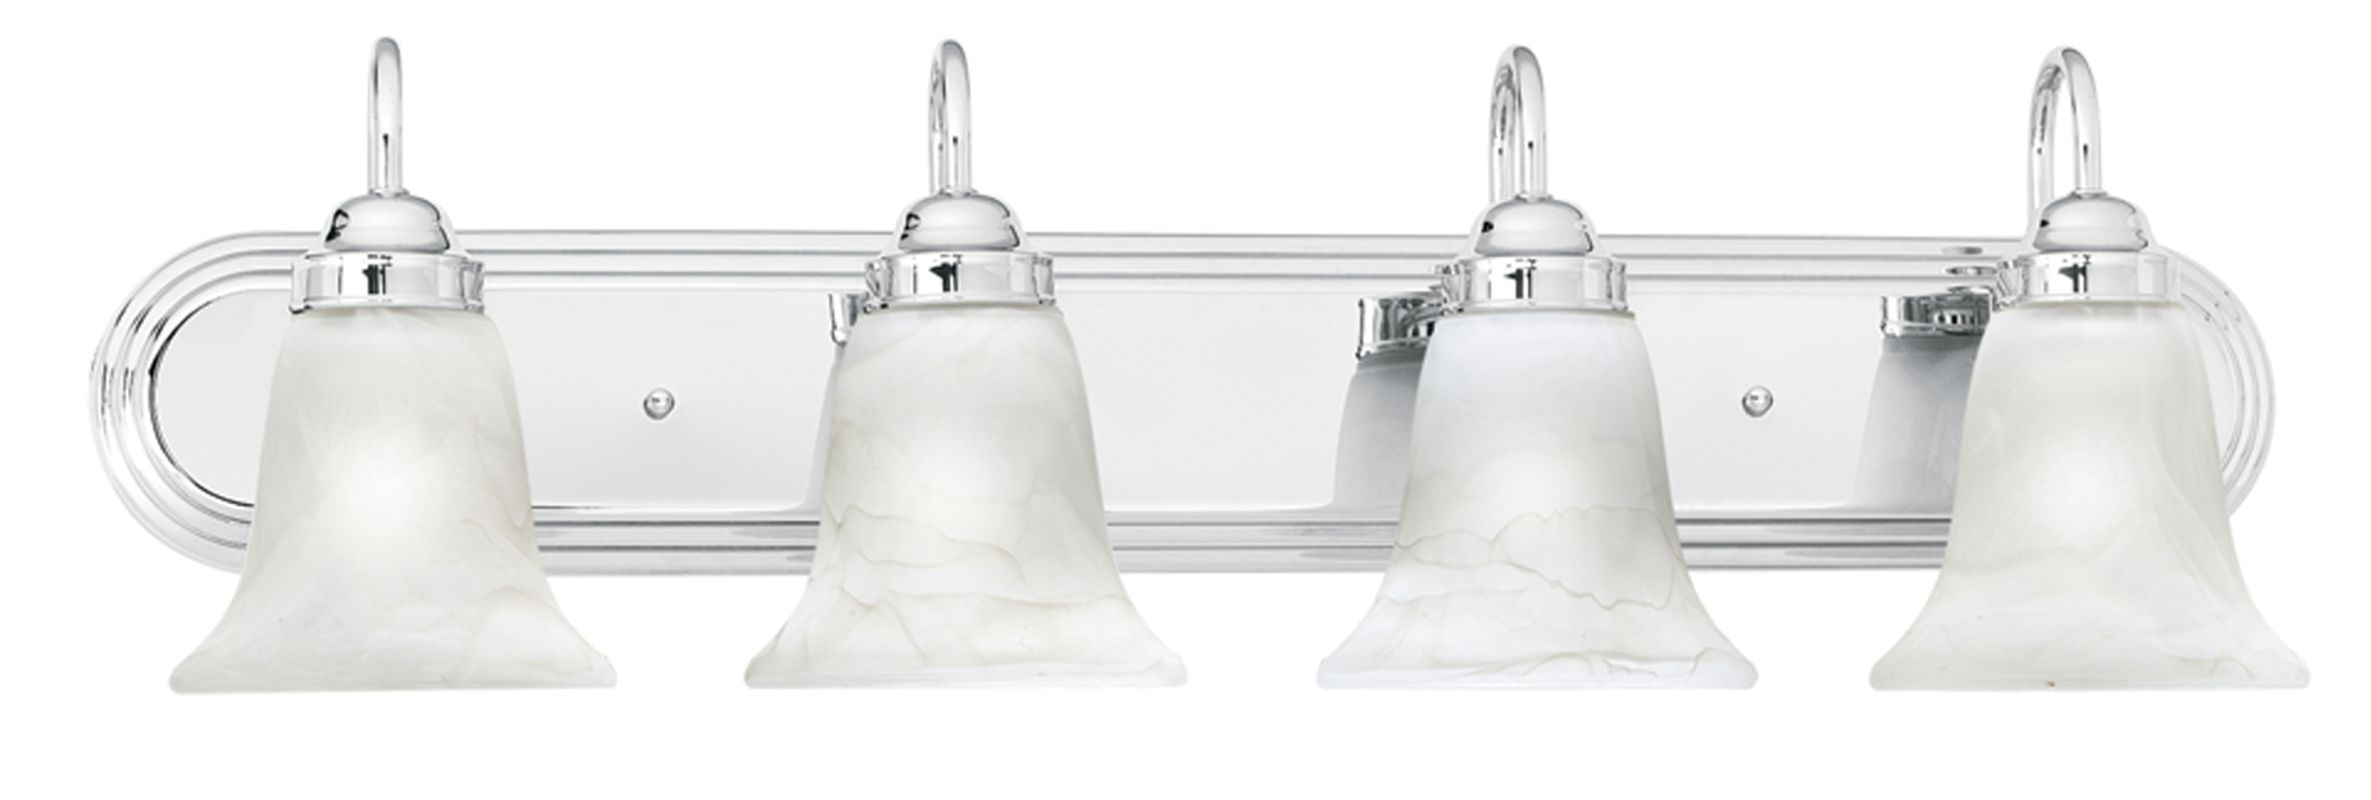 "Thomas Lighting SL7584 4 Light 30"" Wide Bathroom Fixture from the"